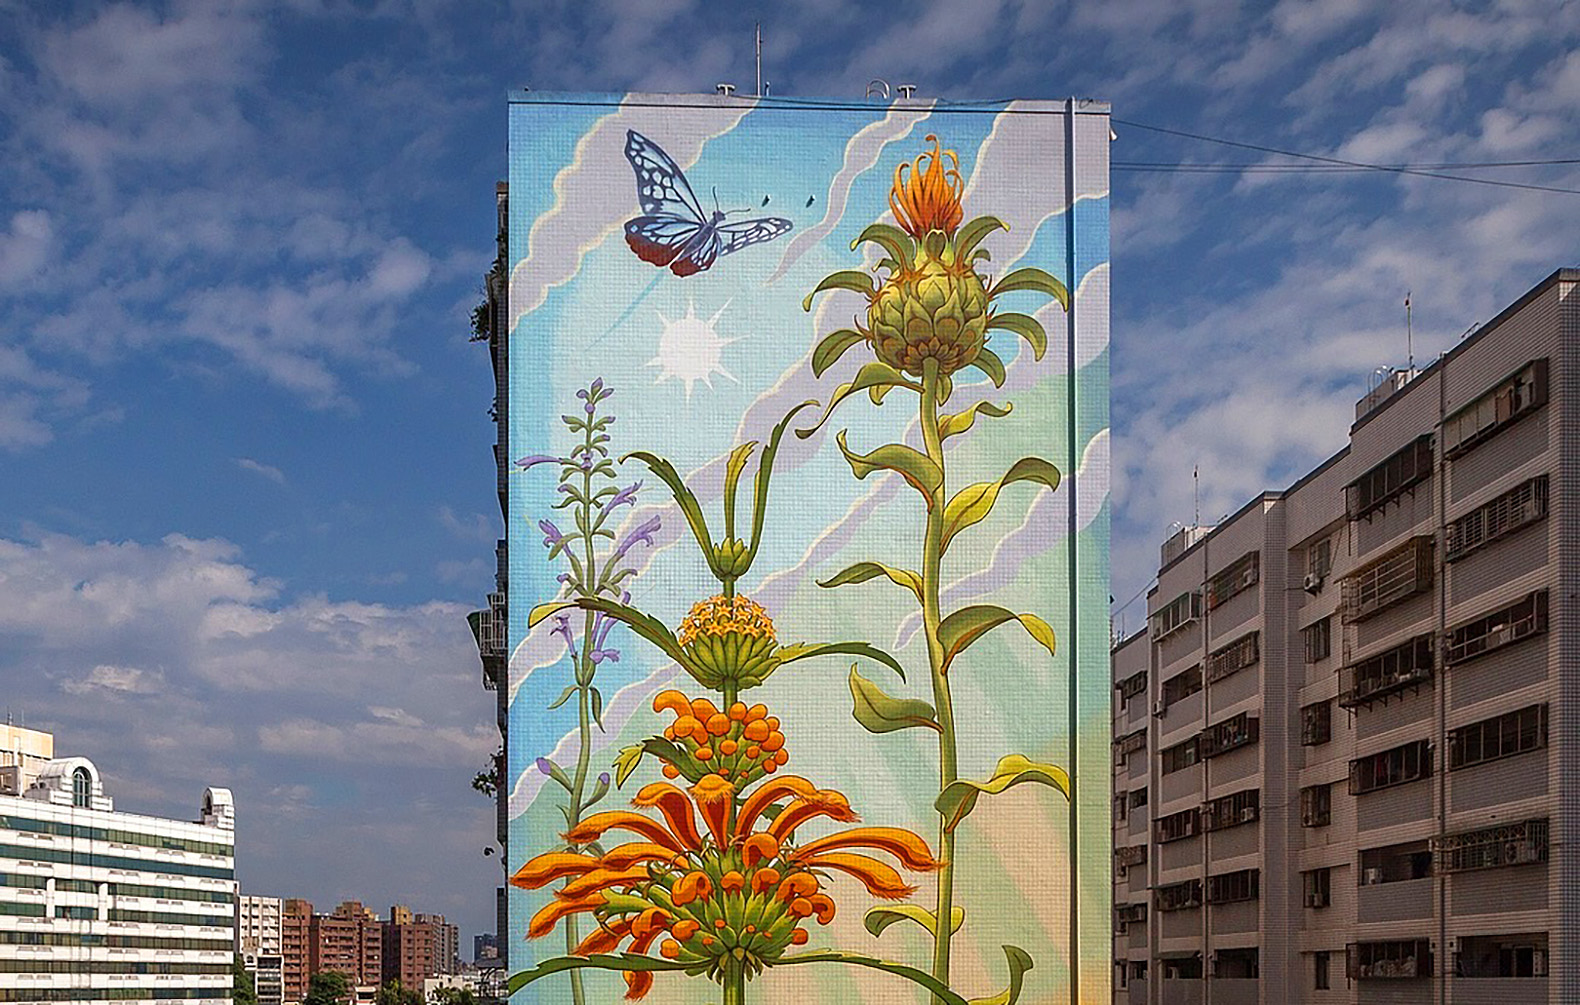 Gigantic murals of local flora sprout on buildings around the world